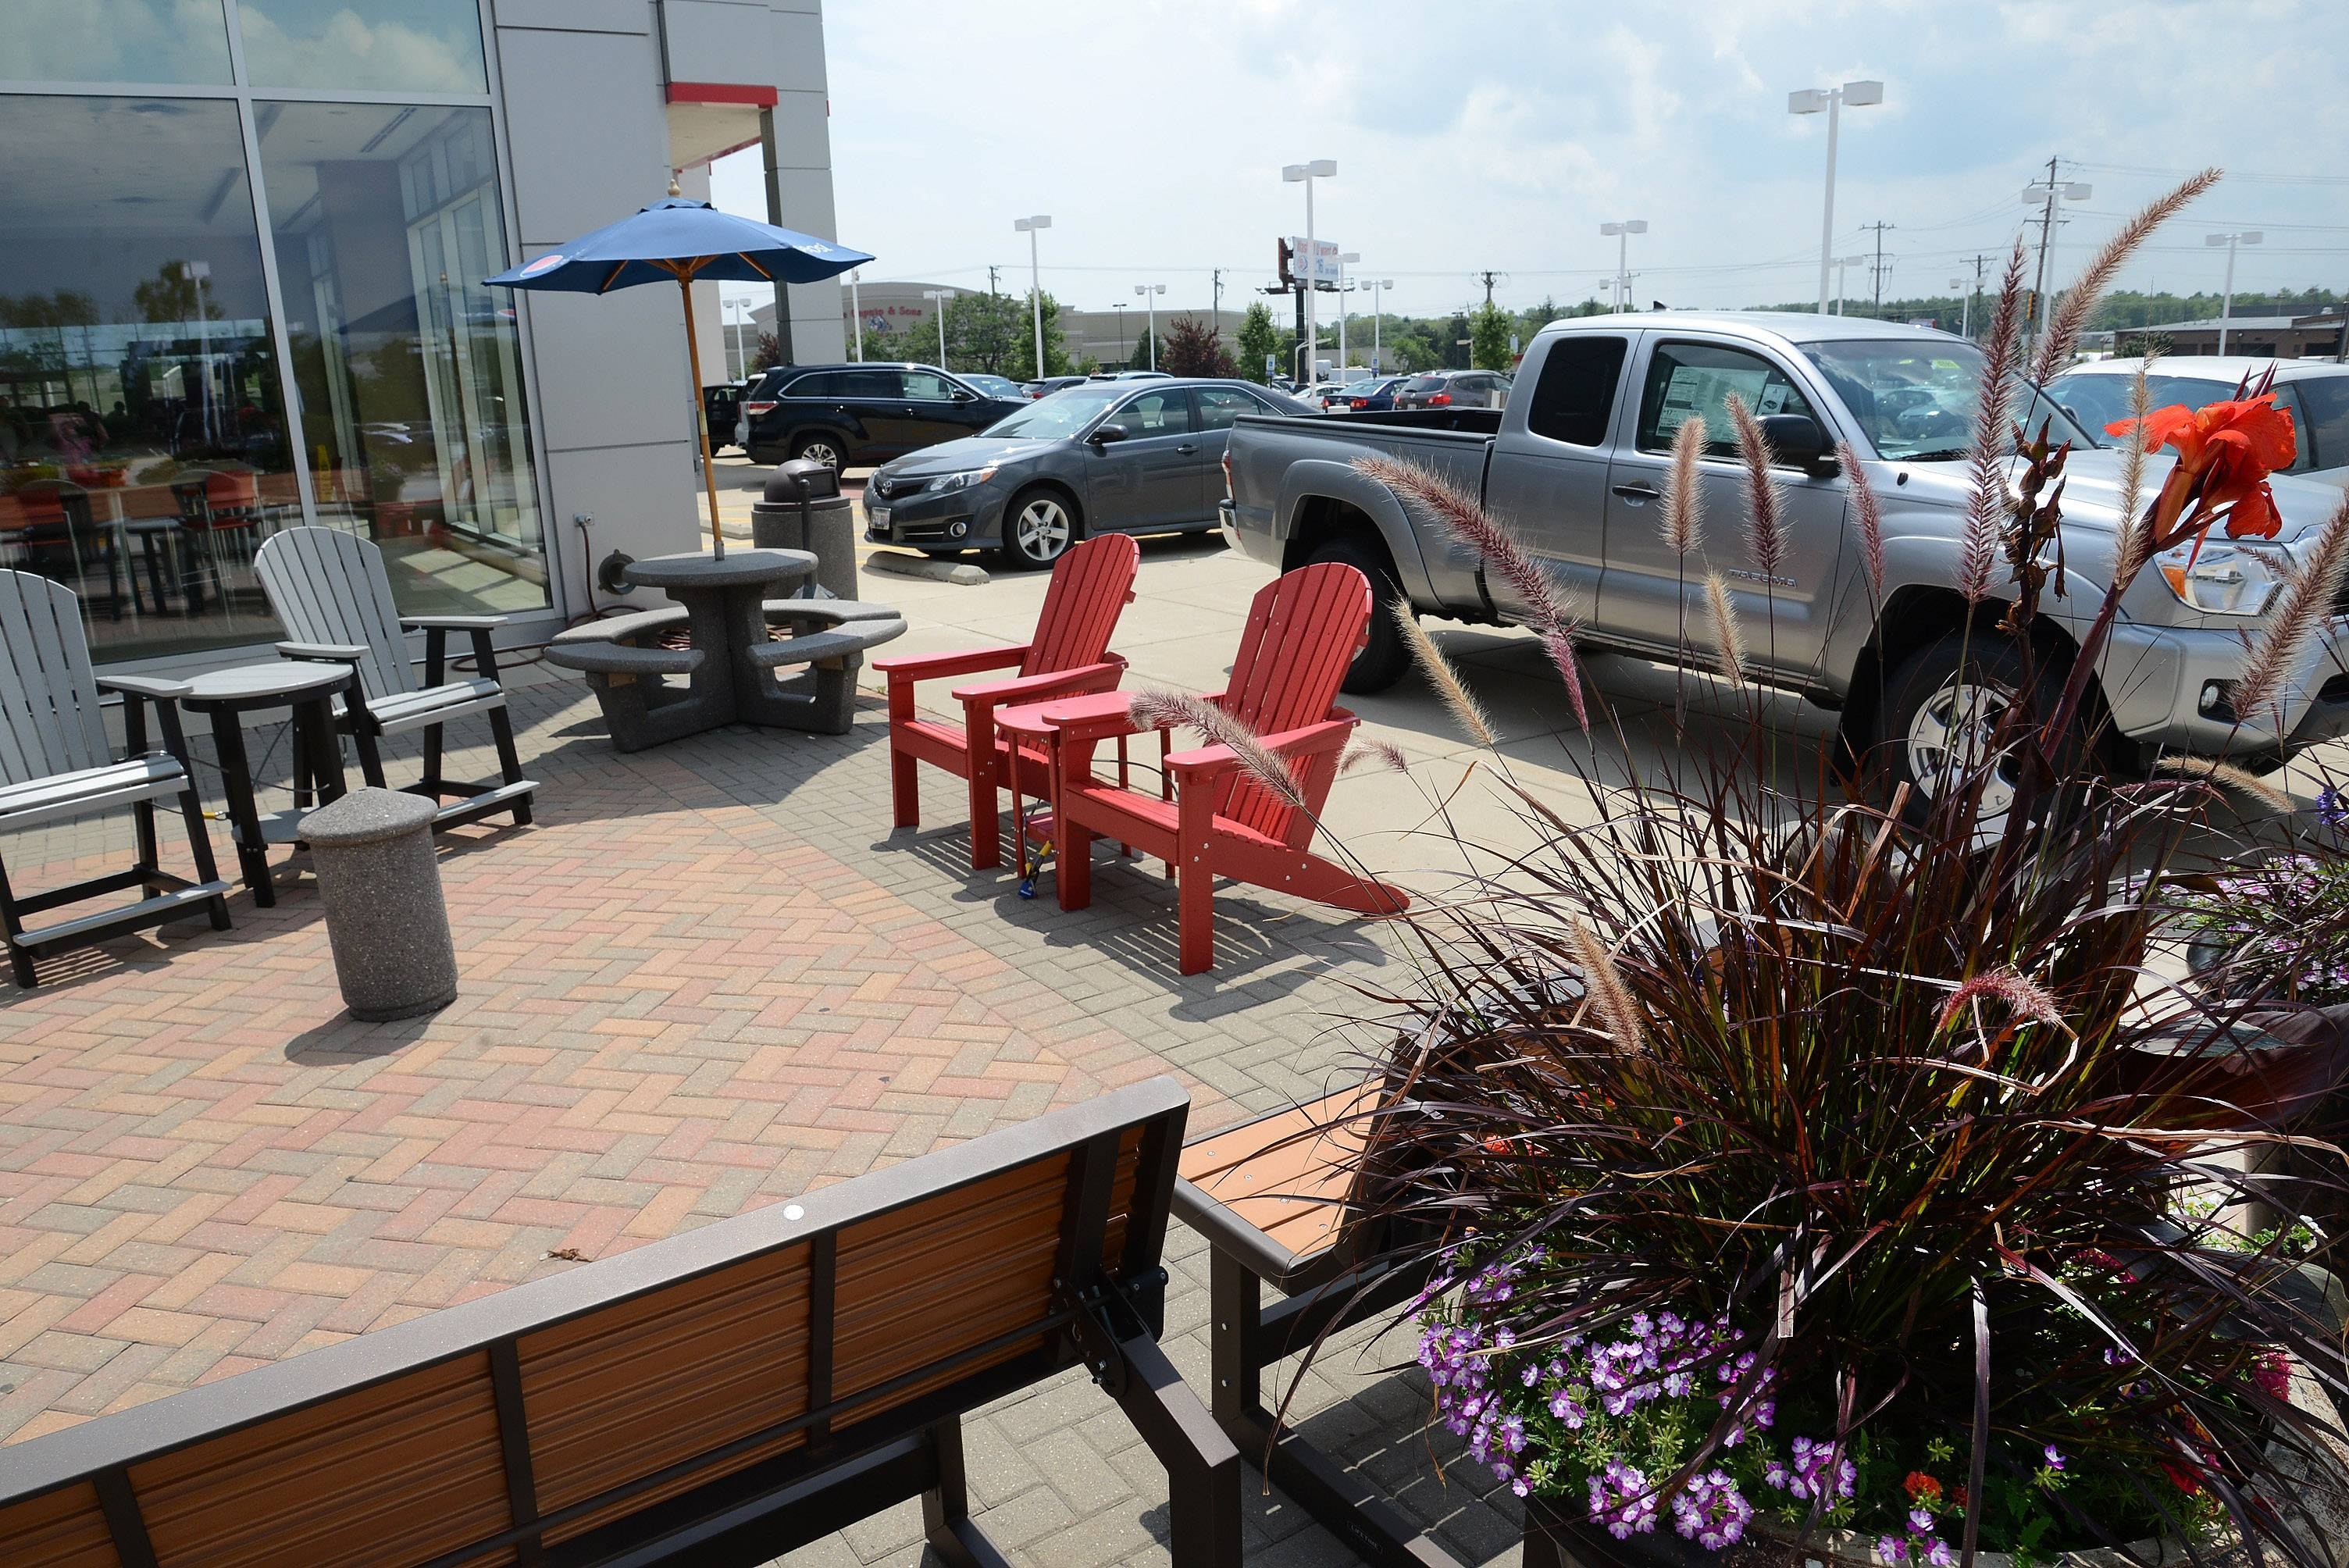 Gary Vicari places an emphasis on bringing conveniences to Arlington Toyota/Scion customers, including this outdoor waiting area.